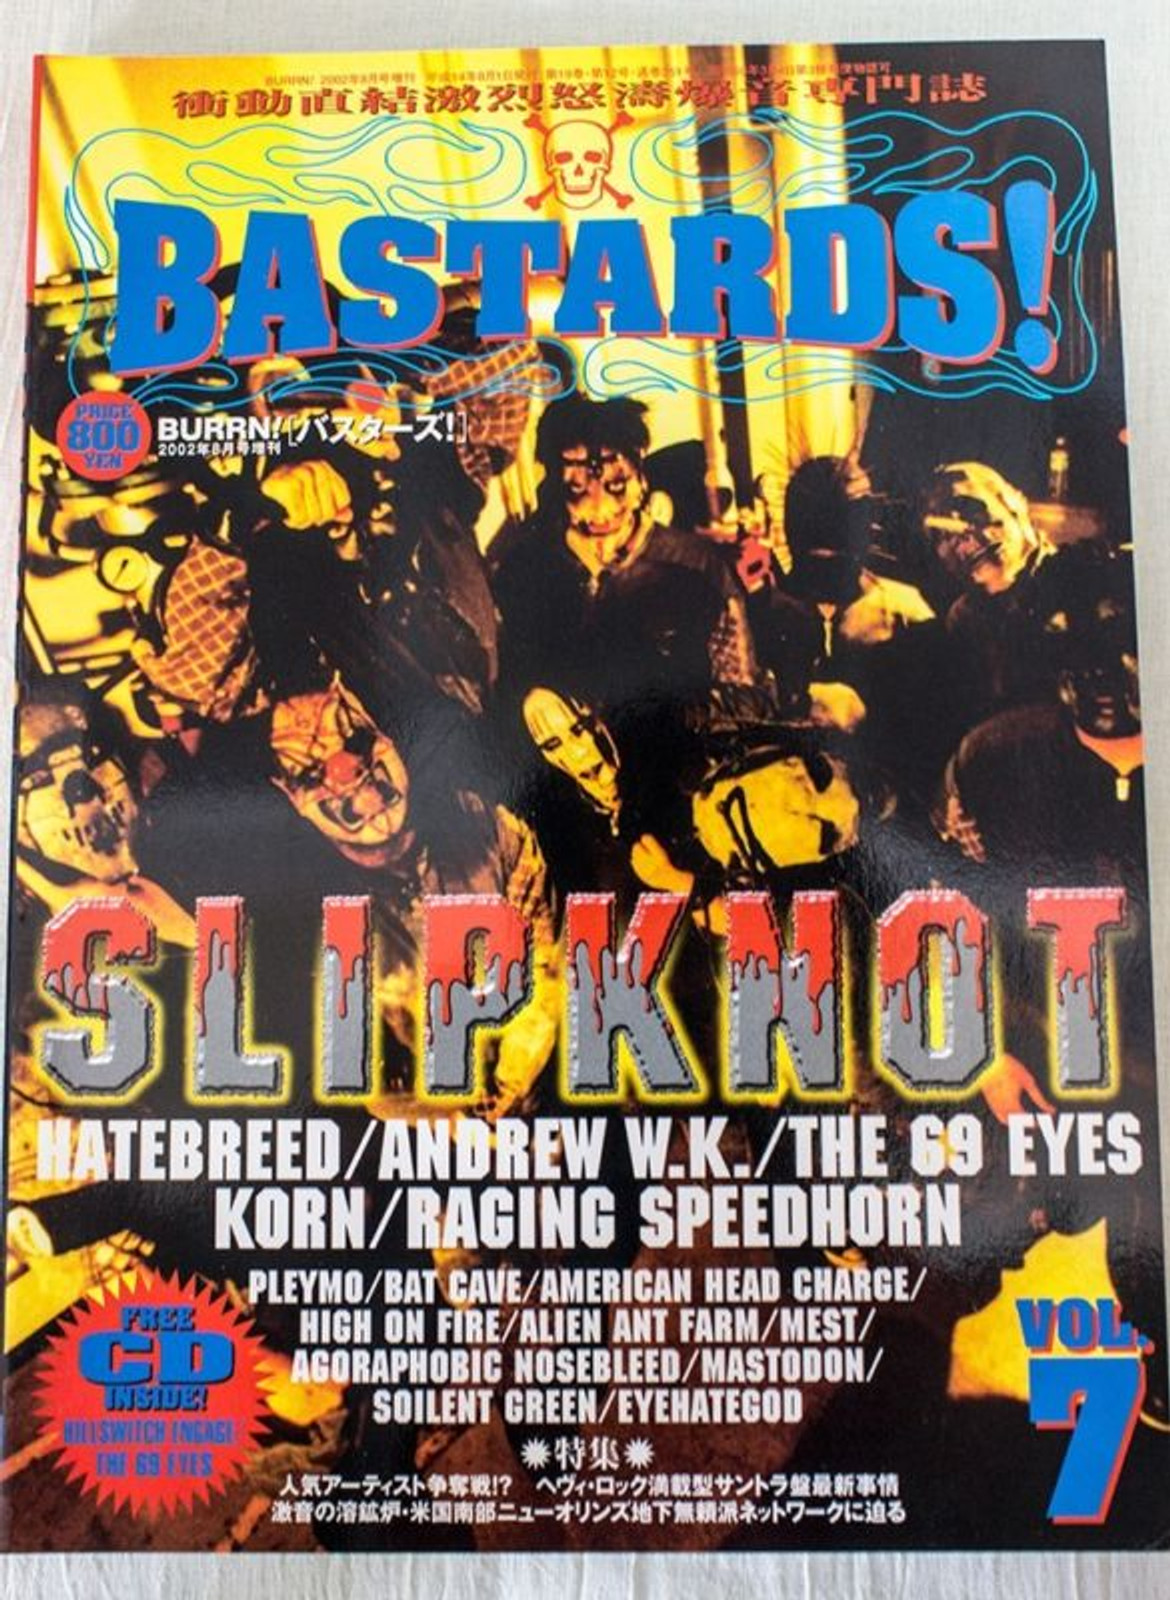 2002 Vol.7 BASTARDS! BURRN! Japan Magazine SLIPKNOT/THE 69 EYES/HATEBREED/KORN